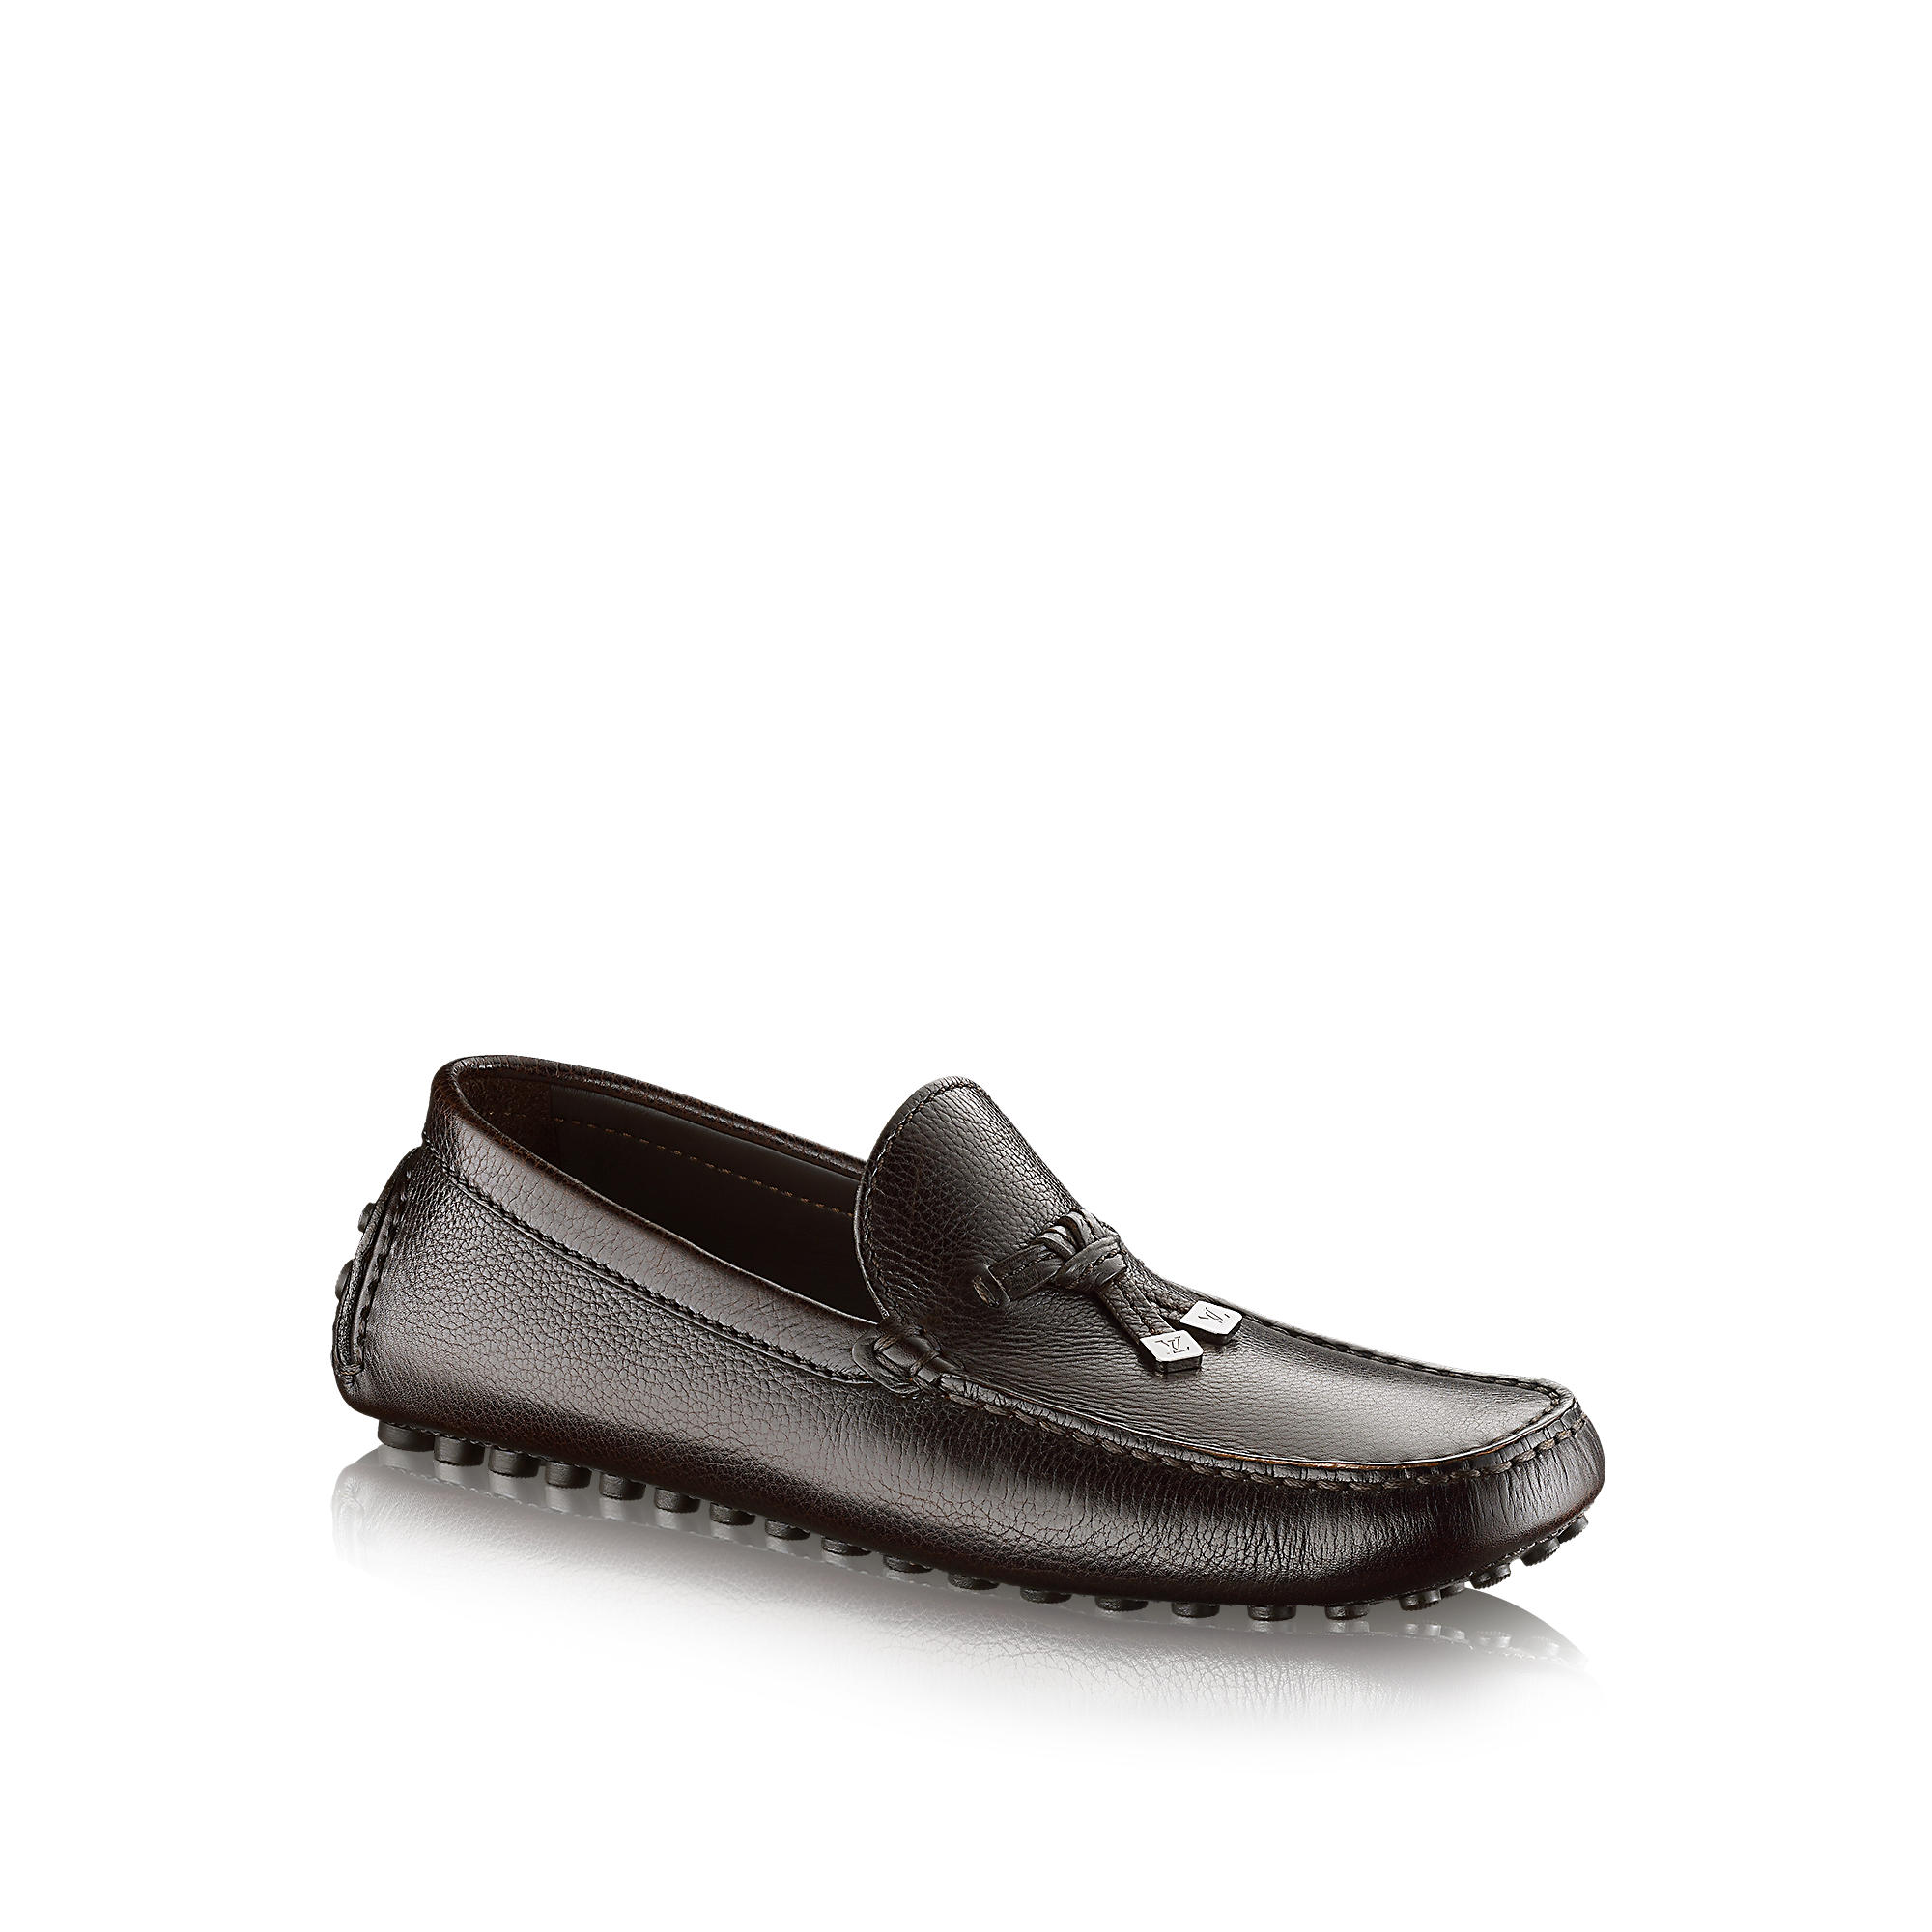 Louis Vuitton 688082 Mocassino Monza